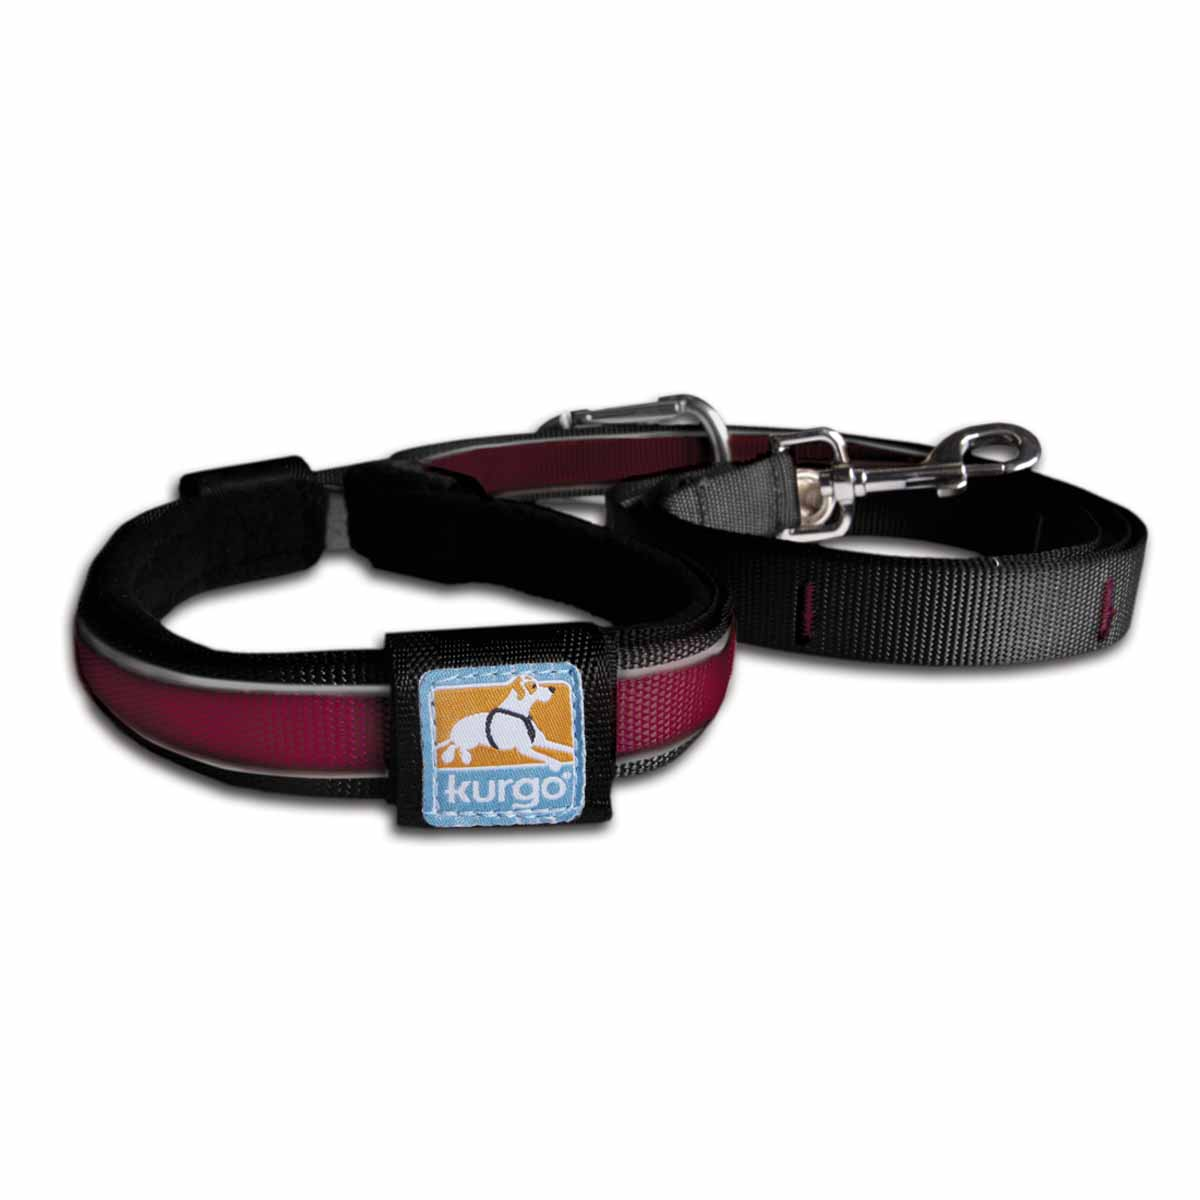 Reflect and Protect Quantum Dog Leash by Kurgo - Raspberry